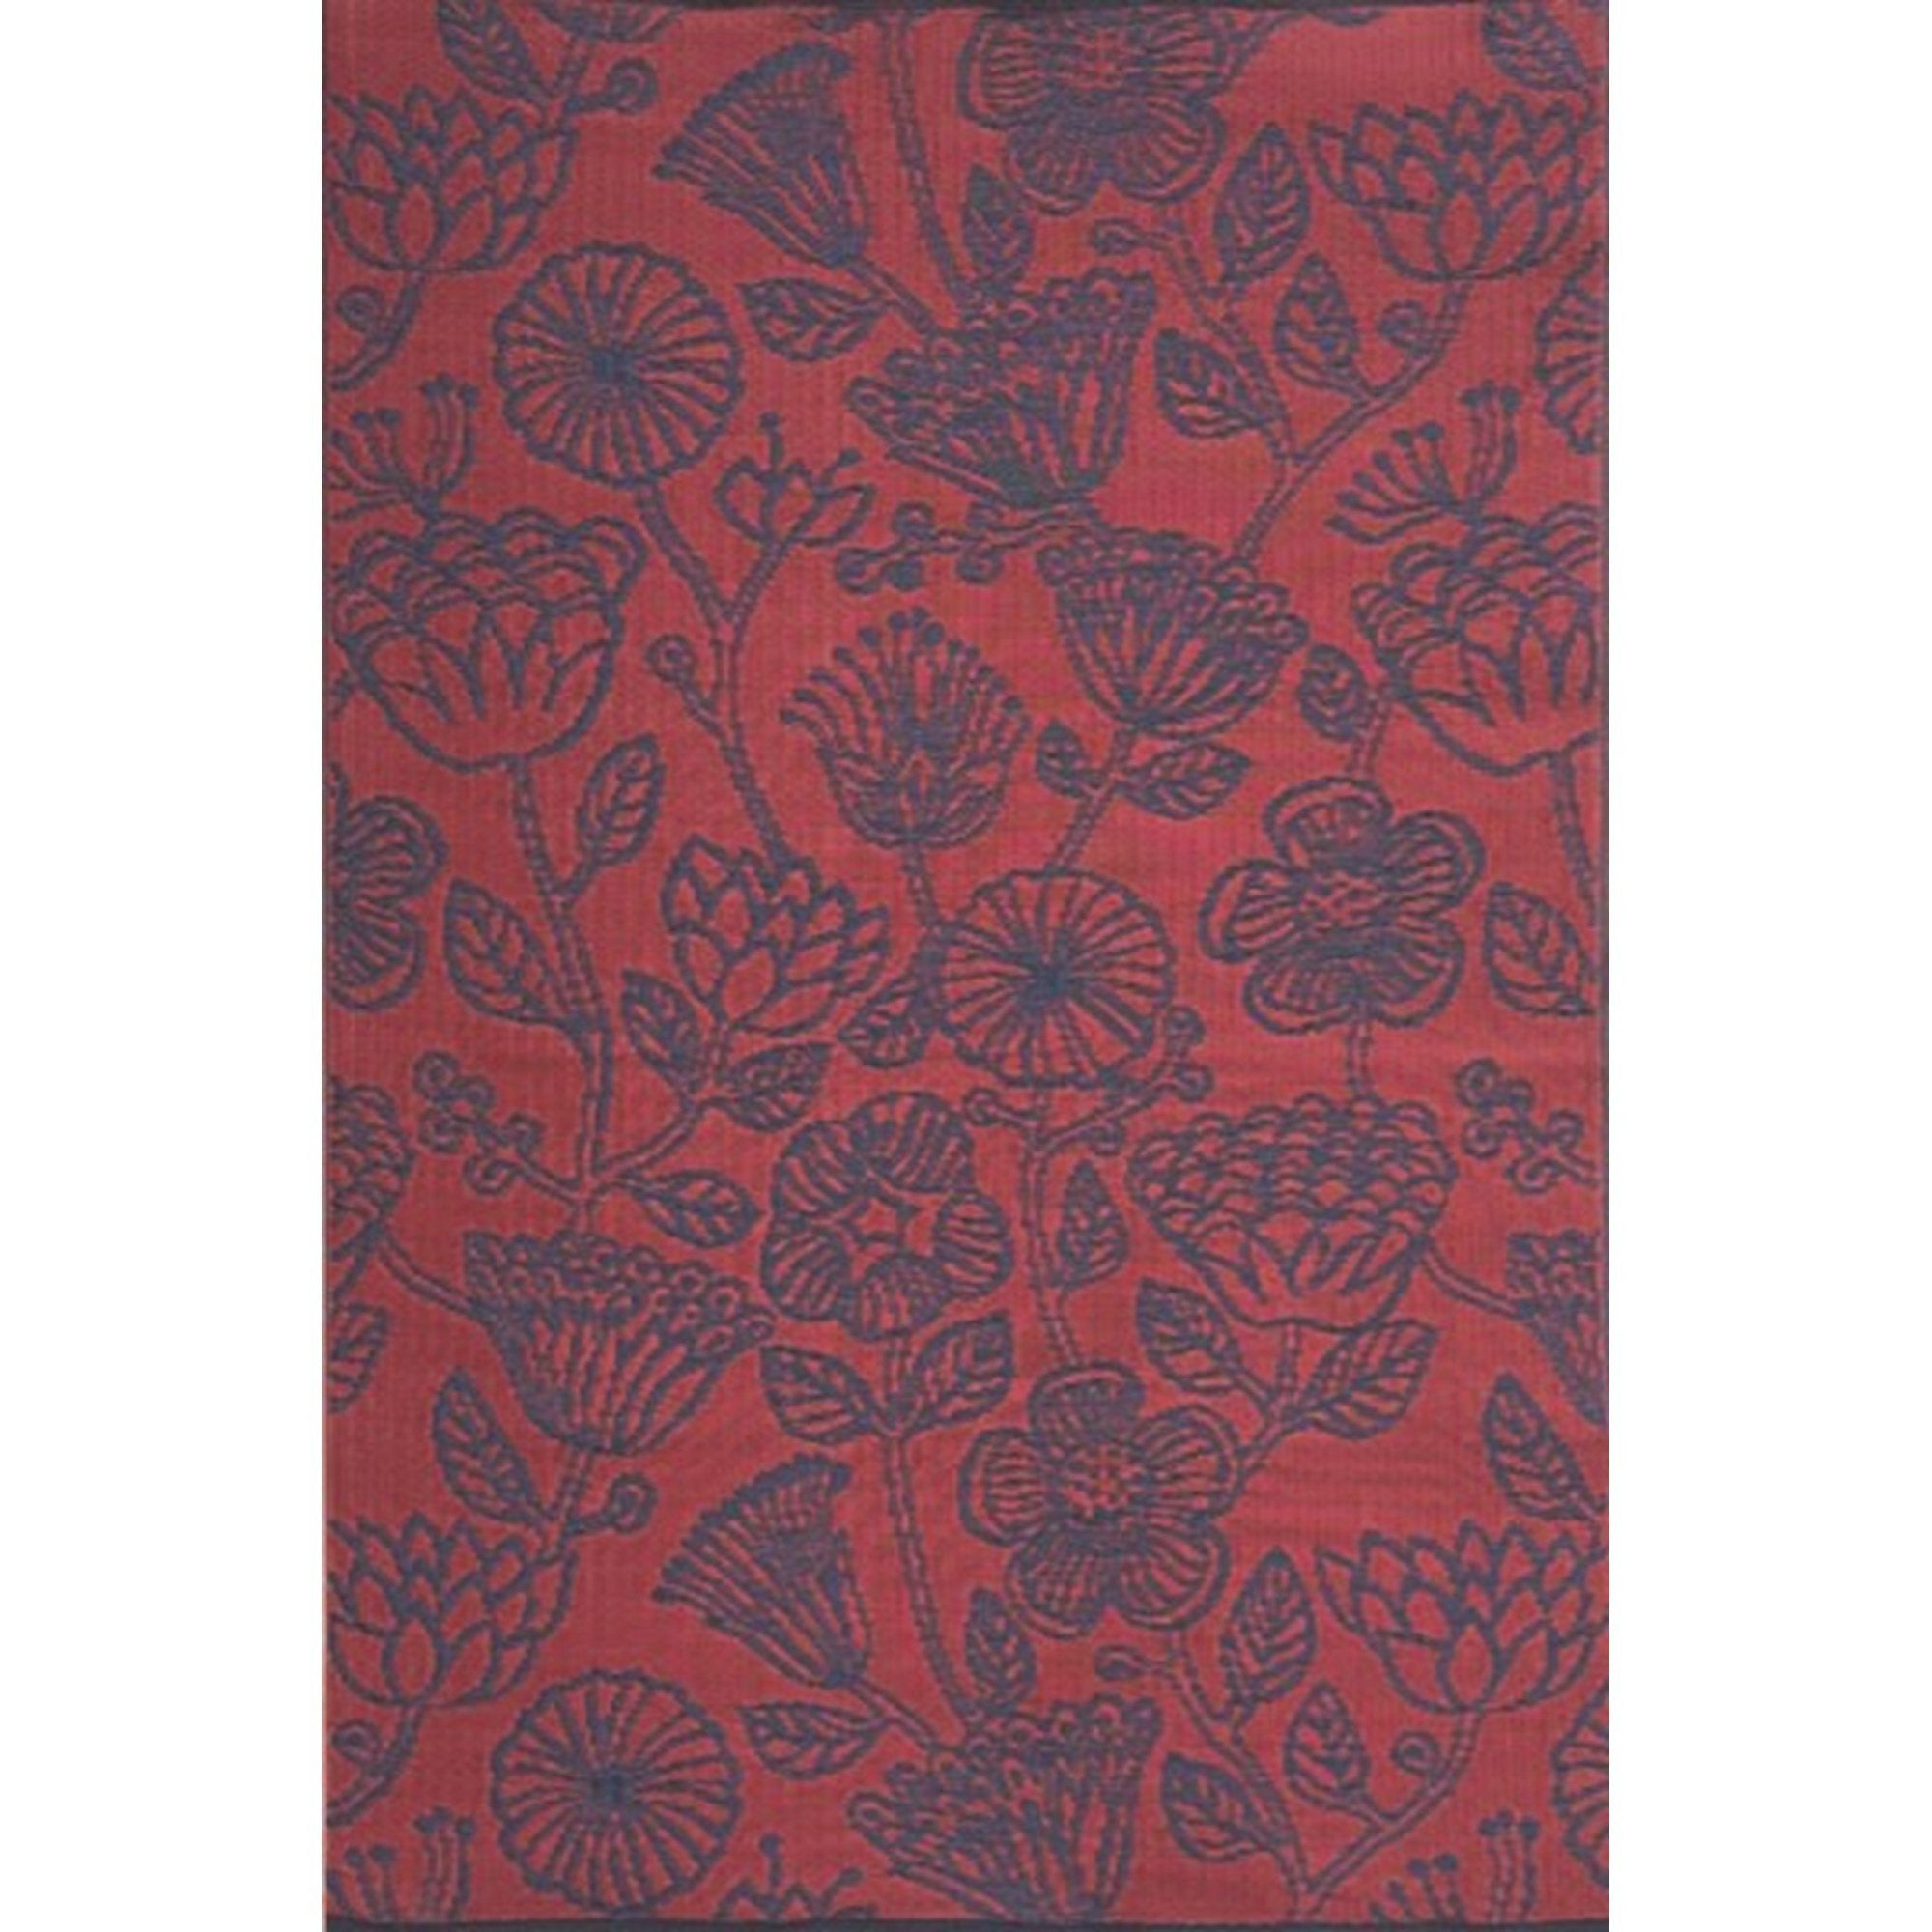 Mad Mats Outdoor Carpet Line Flower Red Indigo - Putti Fine Furnishings Canada